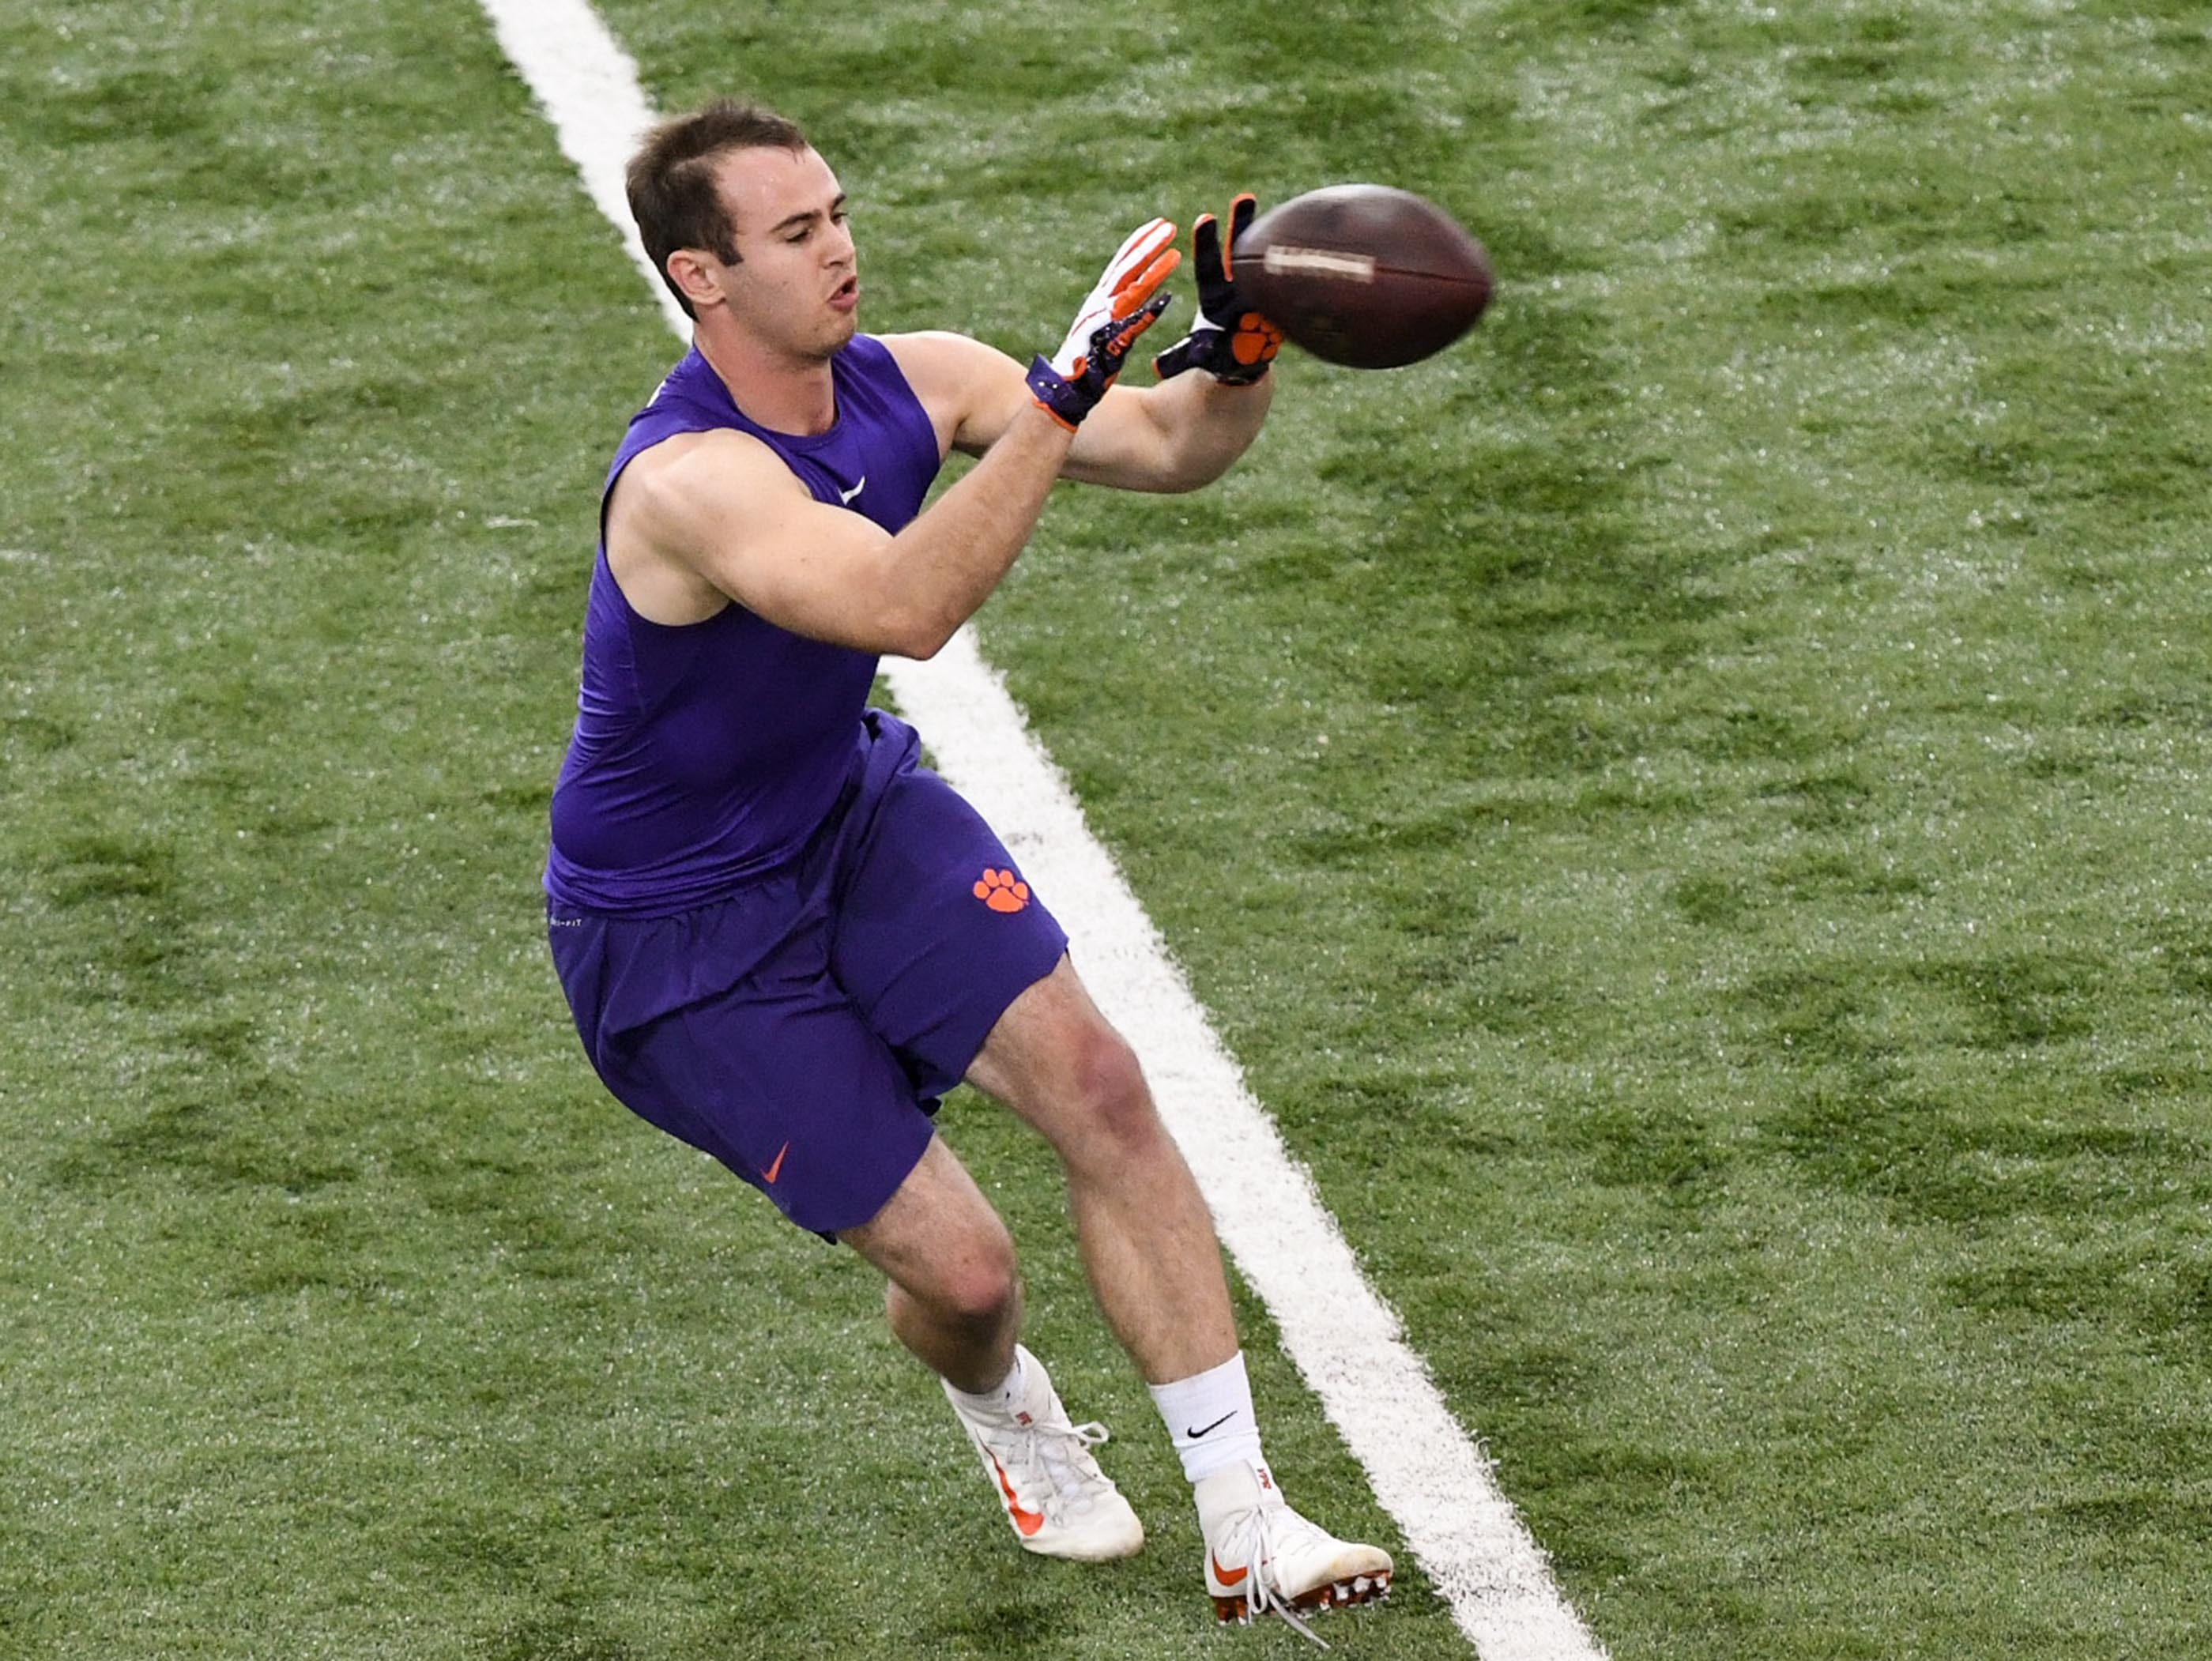 Wide receiver Hunter Renfrow catches a ball during Clemson pro day at the Poe Indoor Facility in Clemson Thursday, March 14, 2019.